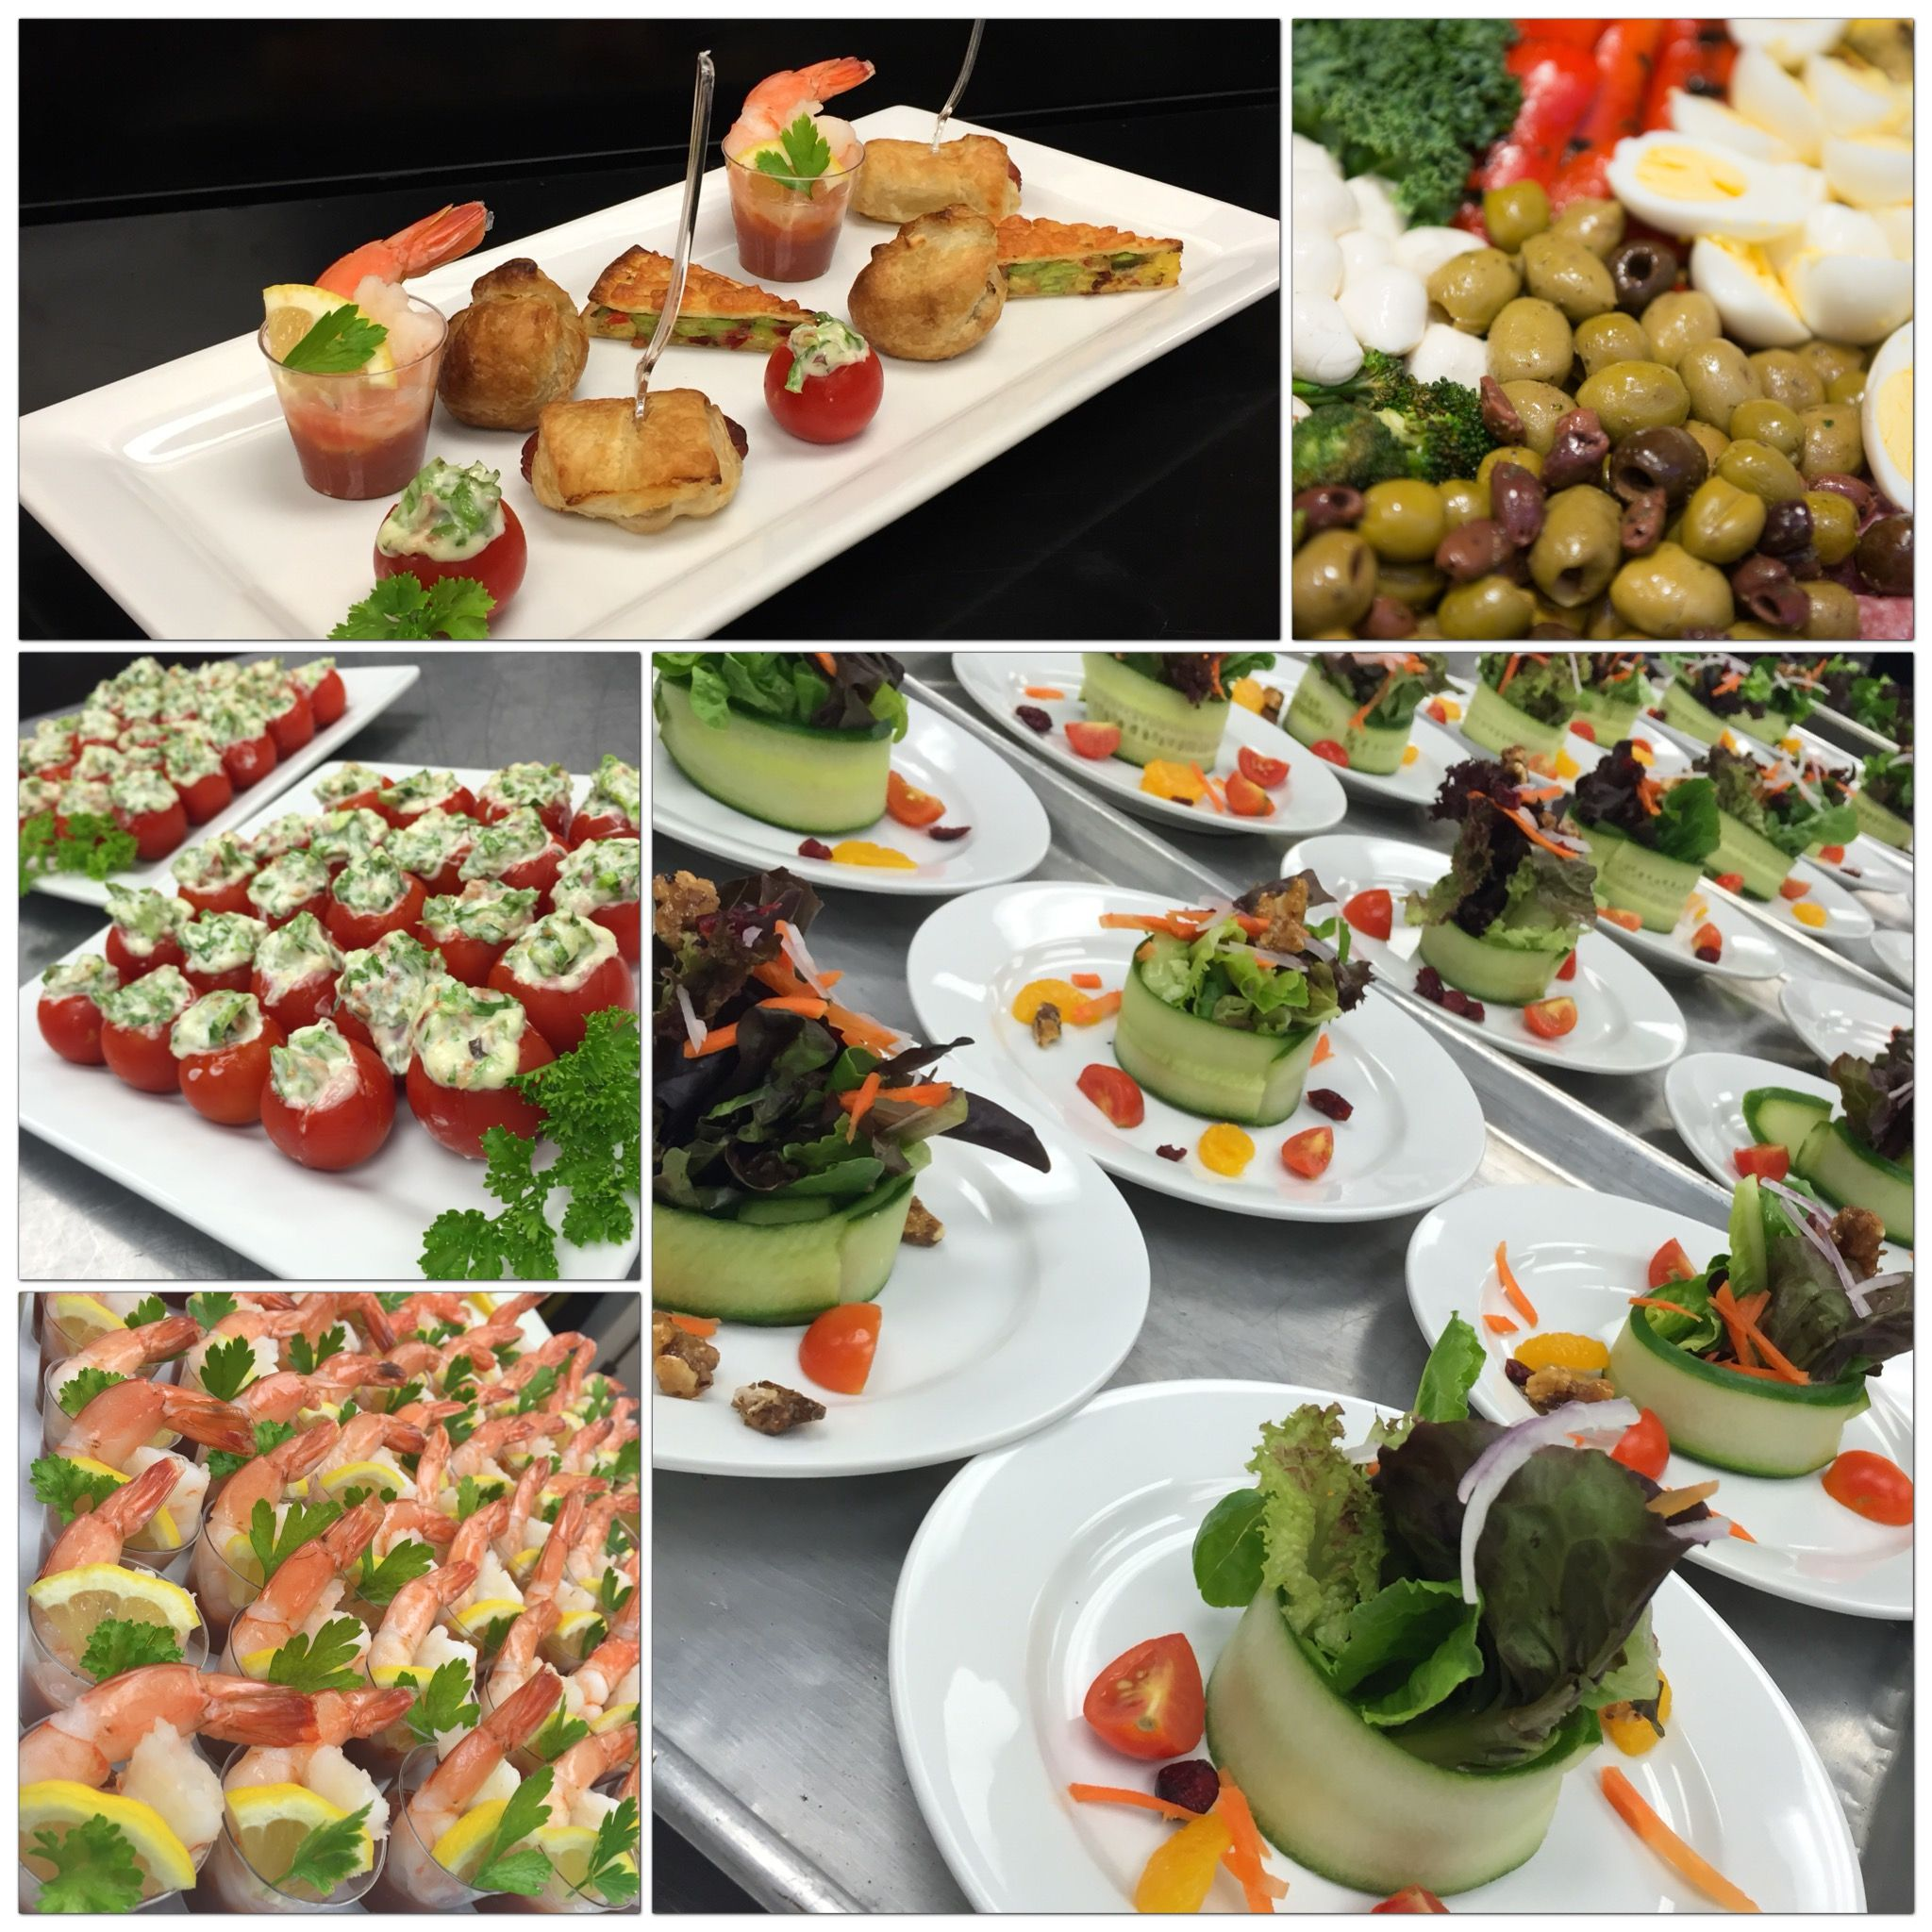 A Little Sample Of Our Catering Menu At The Hilton Garden